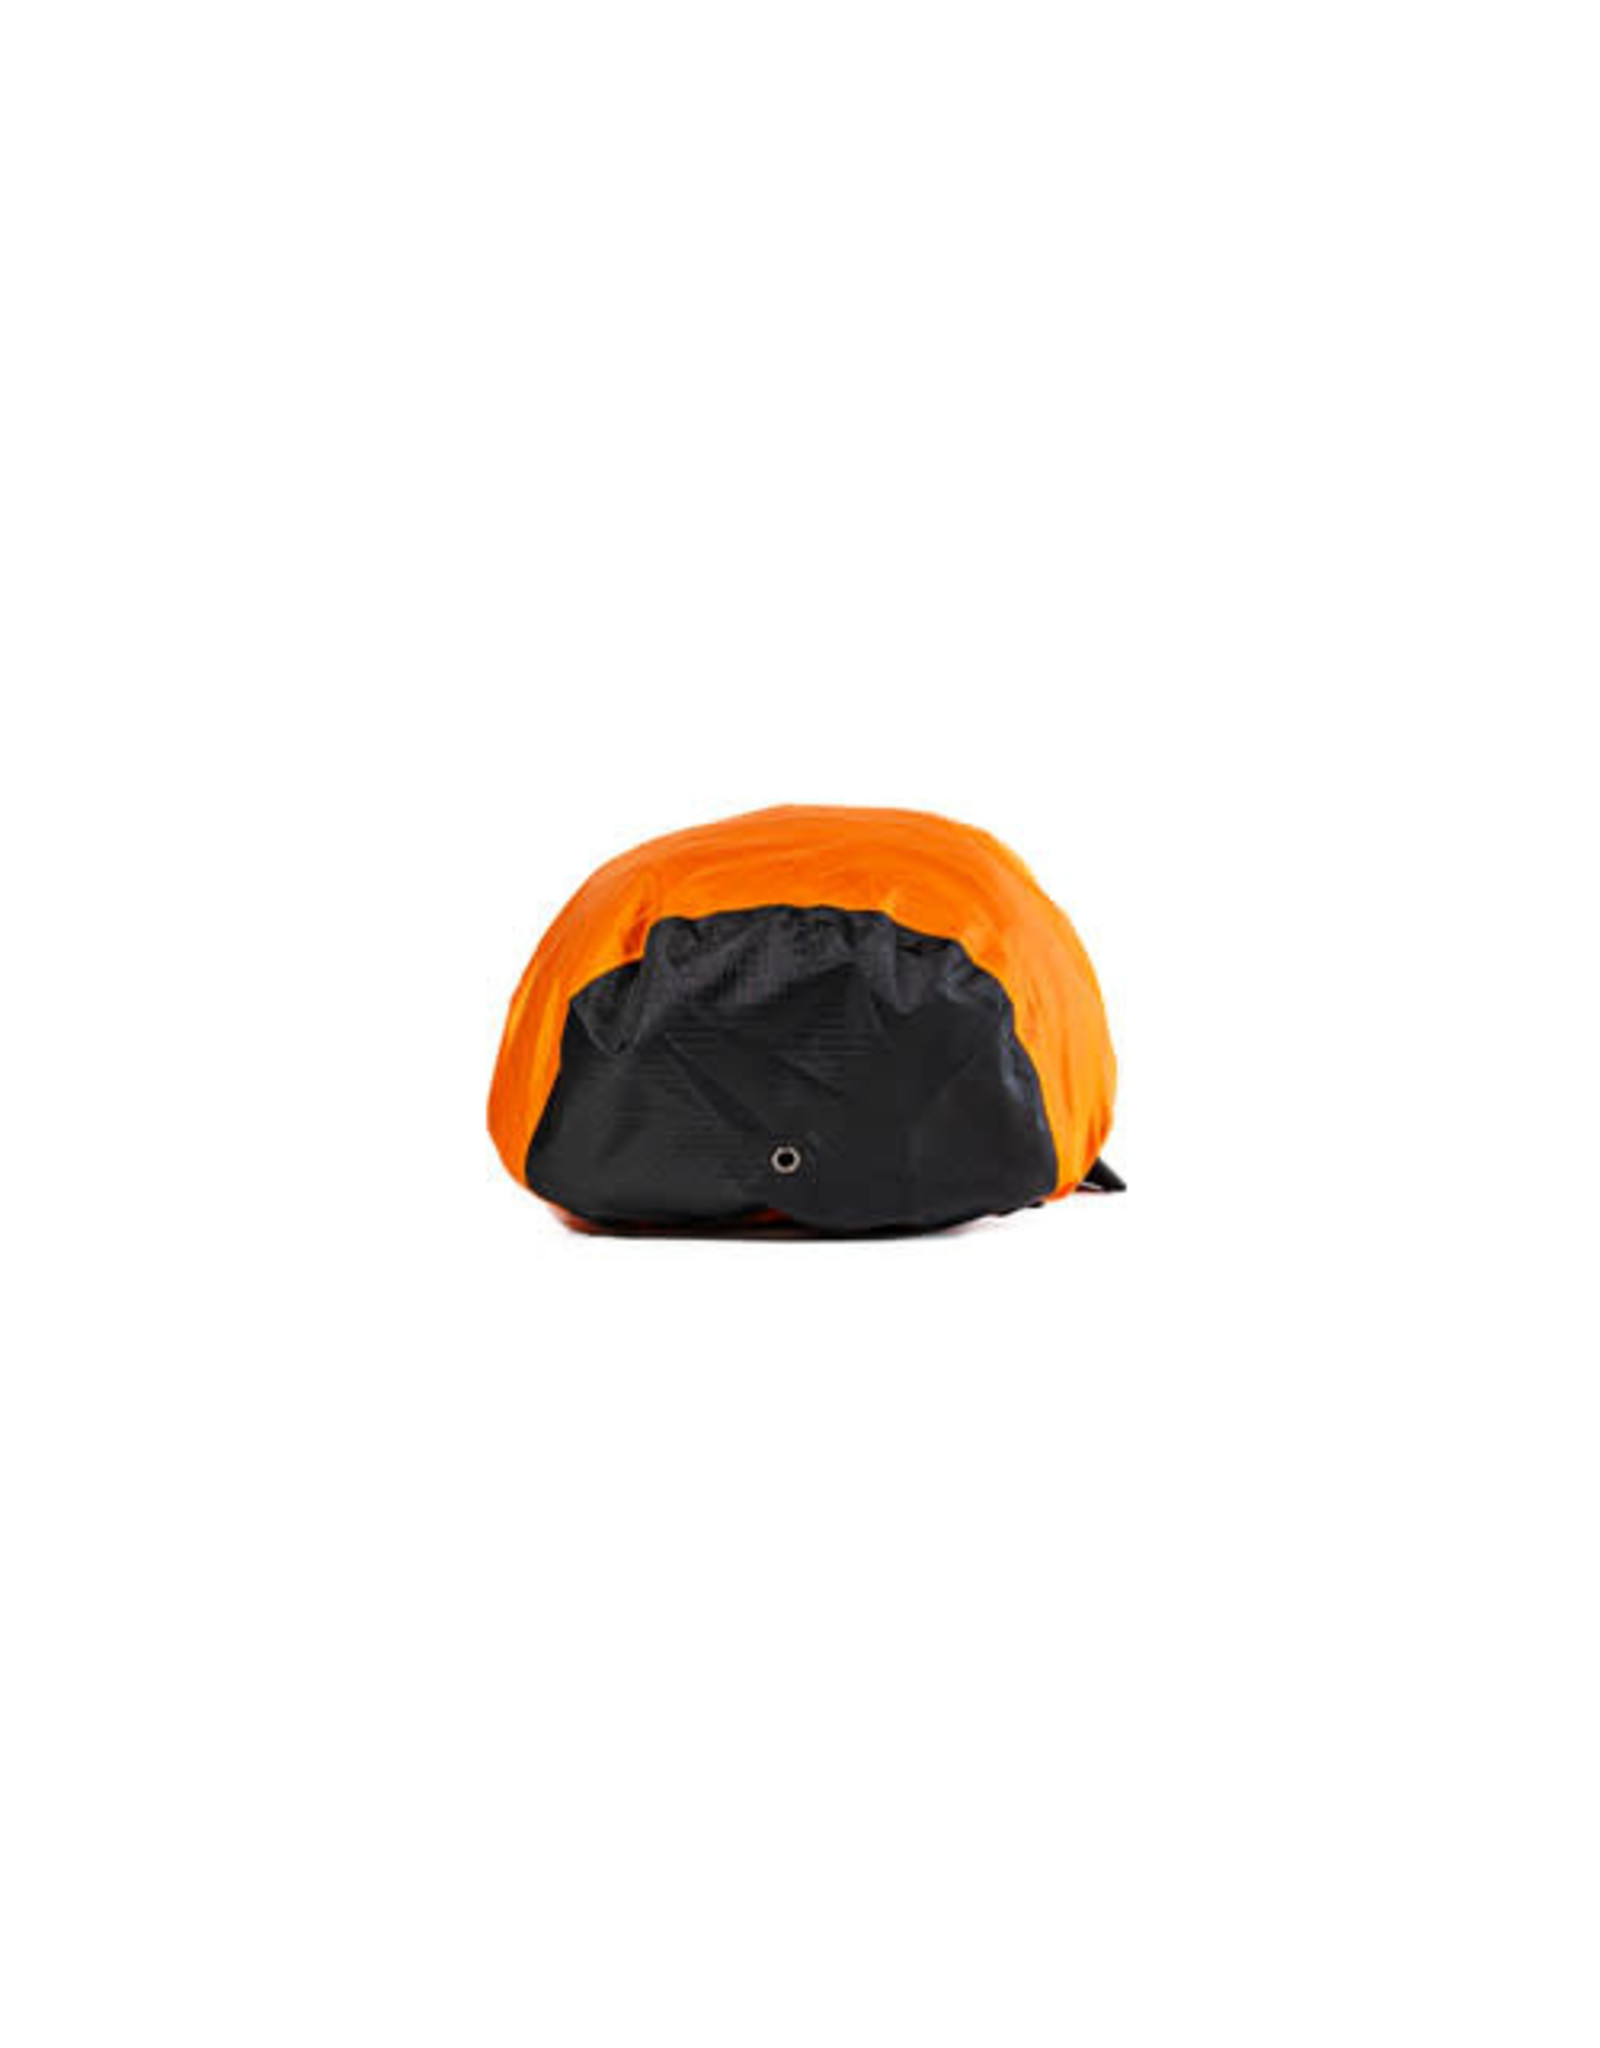 Hotcore Outdoor Products Hotcore Guardian Rain Cover Large